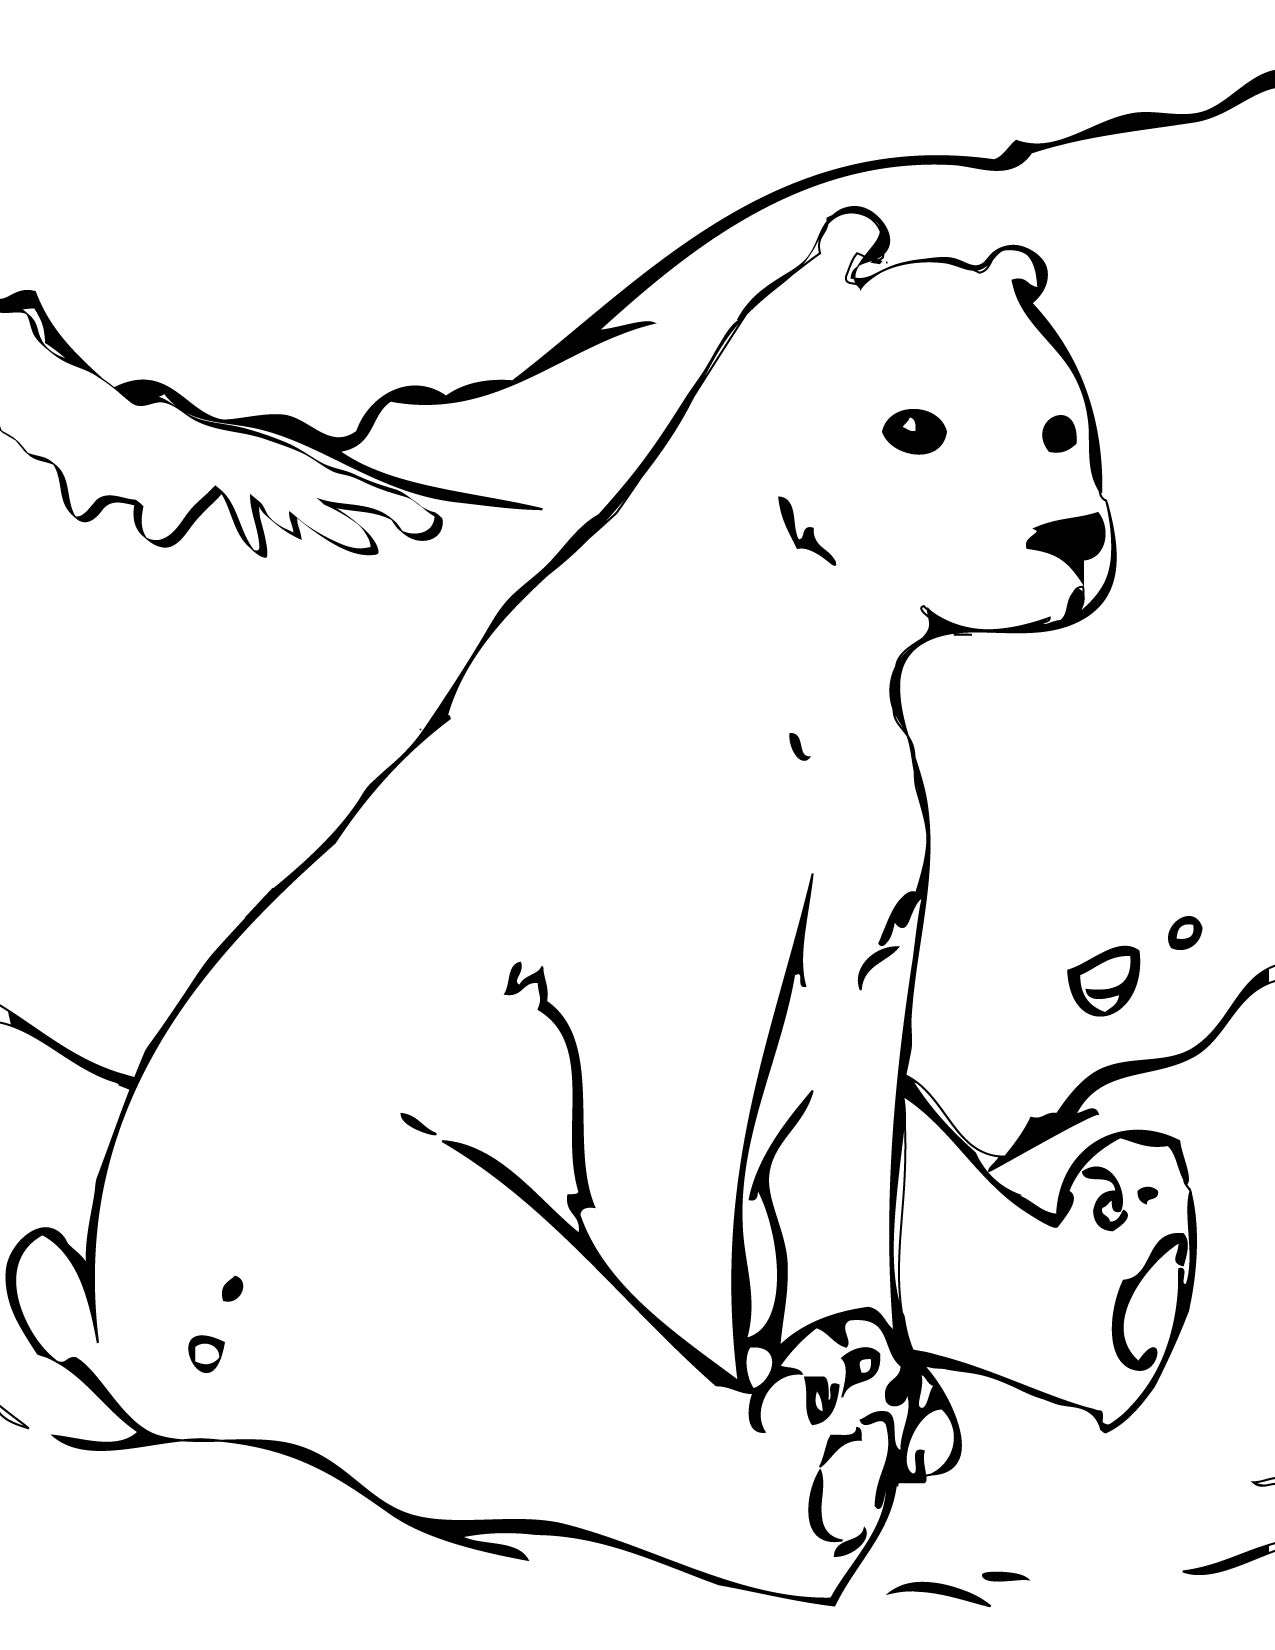 1275x1650 Coloring Pages Elegant Coloring Pages Draw A Polar Bear Page